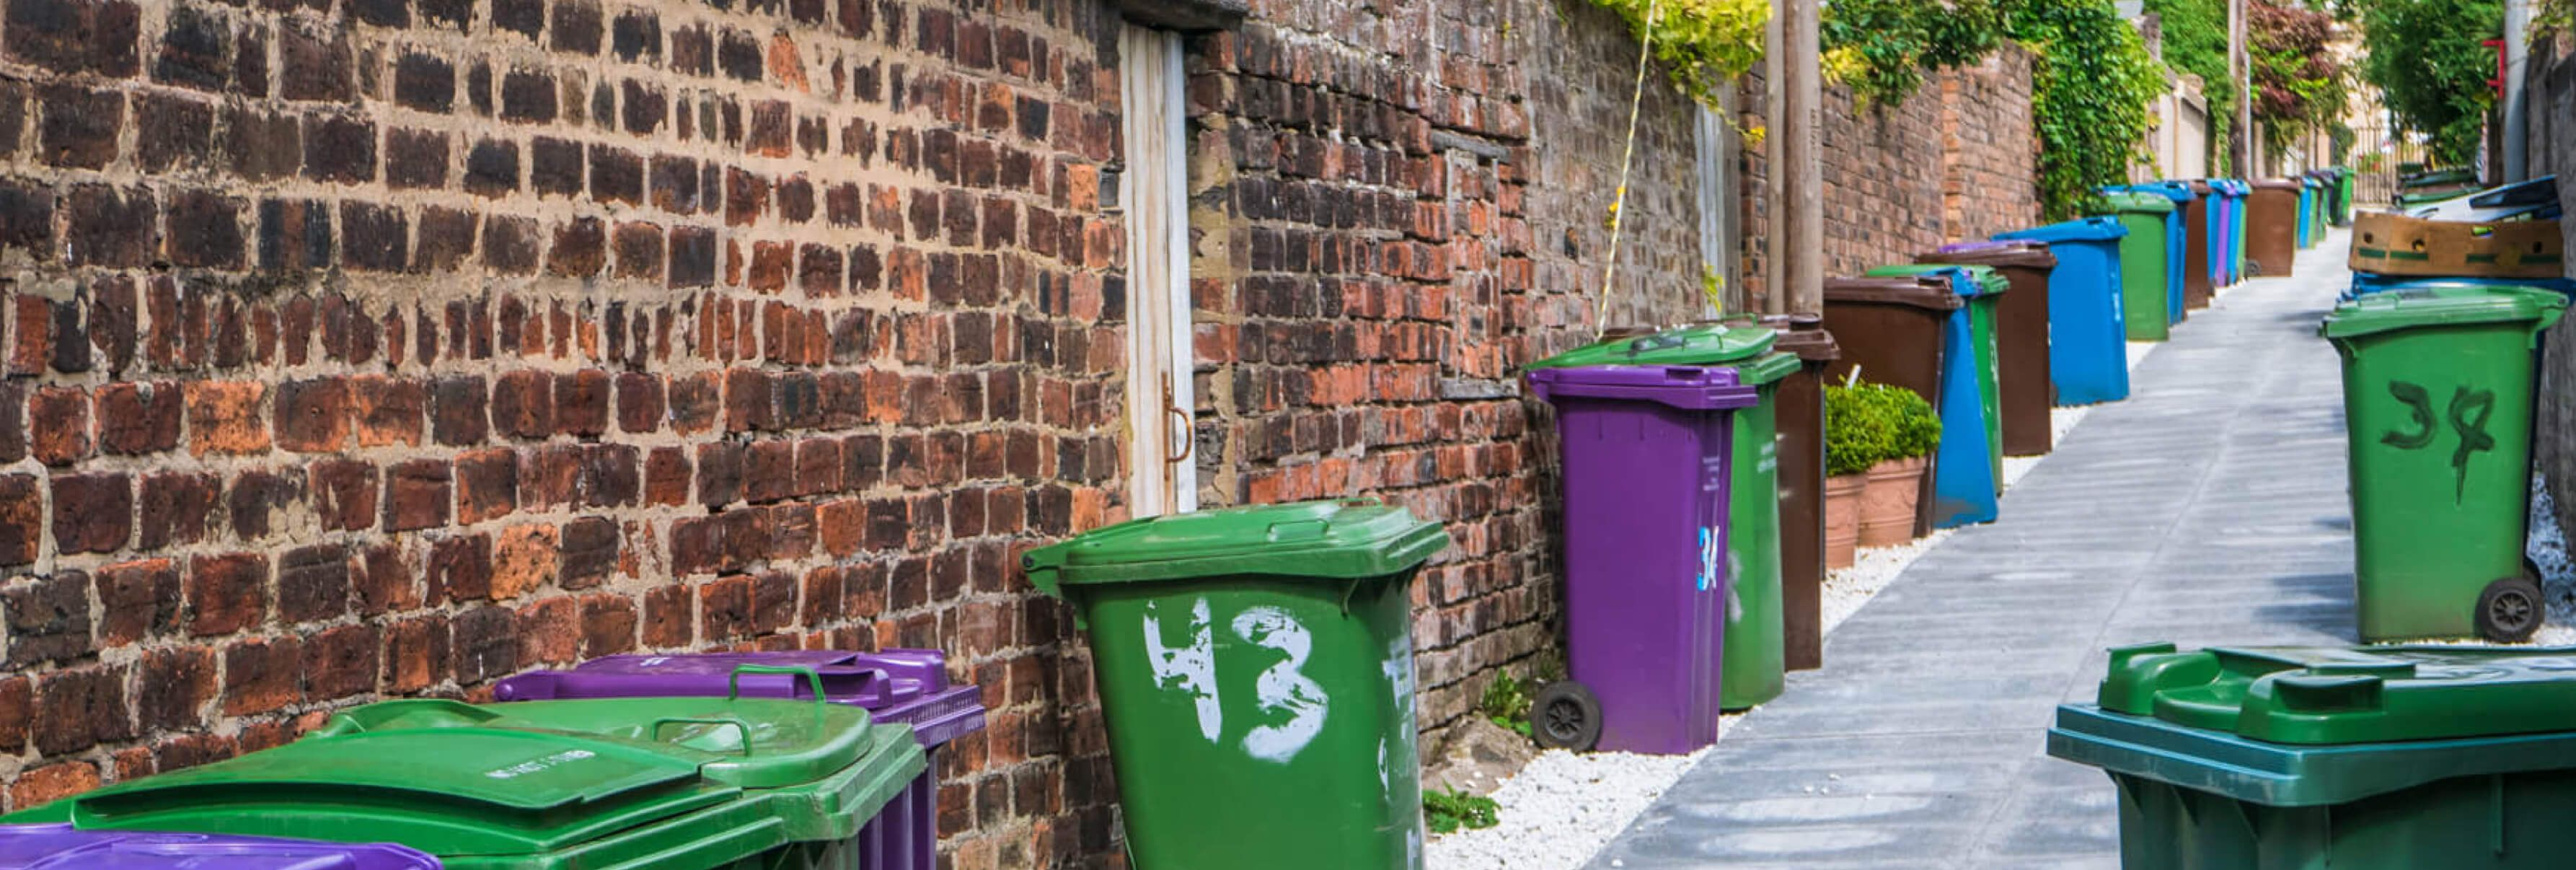 Private Home Wheelie Bin Collections: How to Save Money